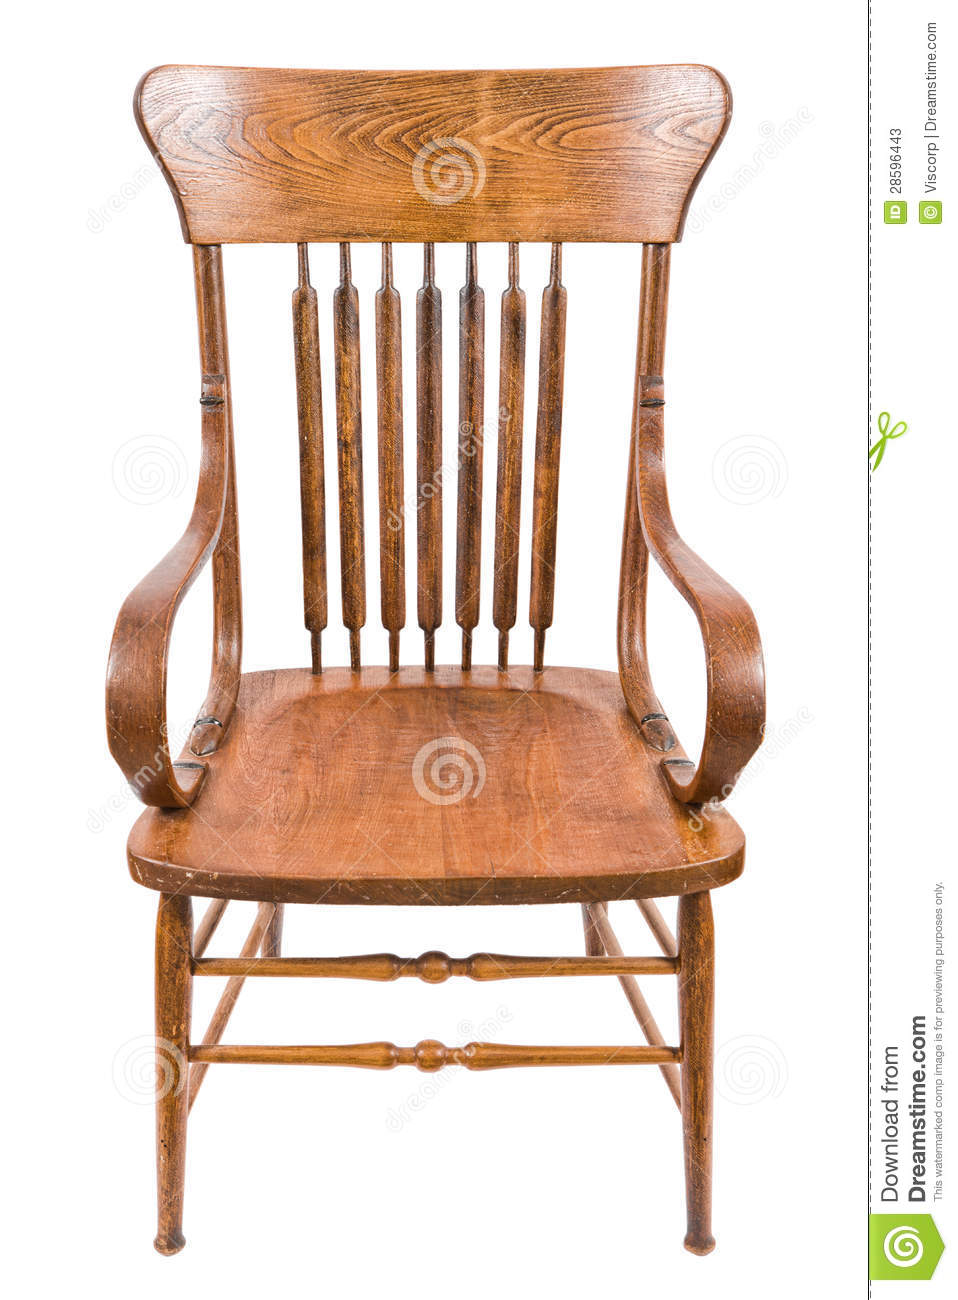 Old wooden chair stock photos image 28596443